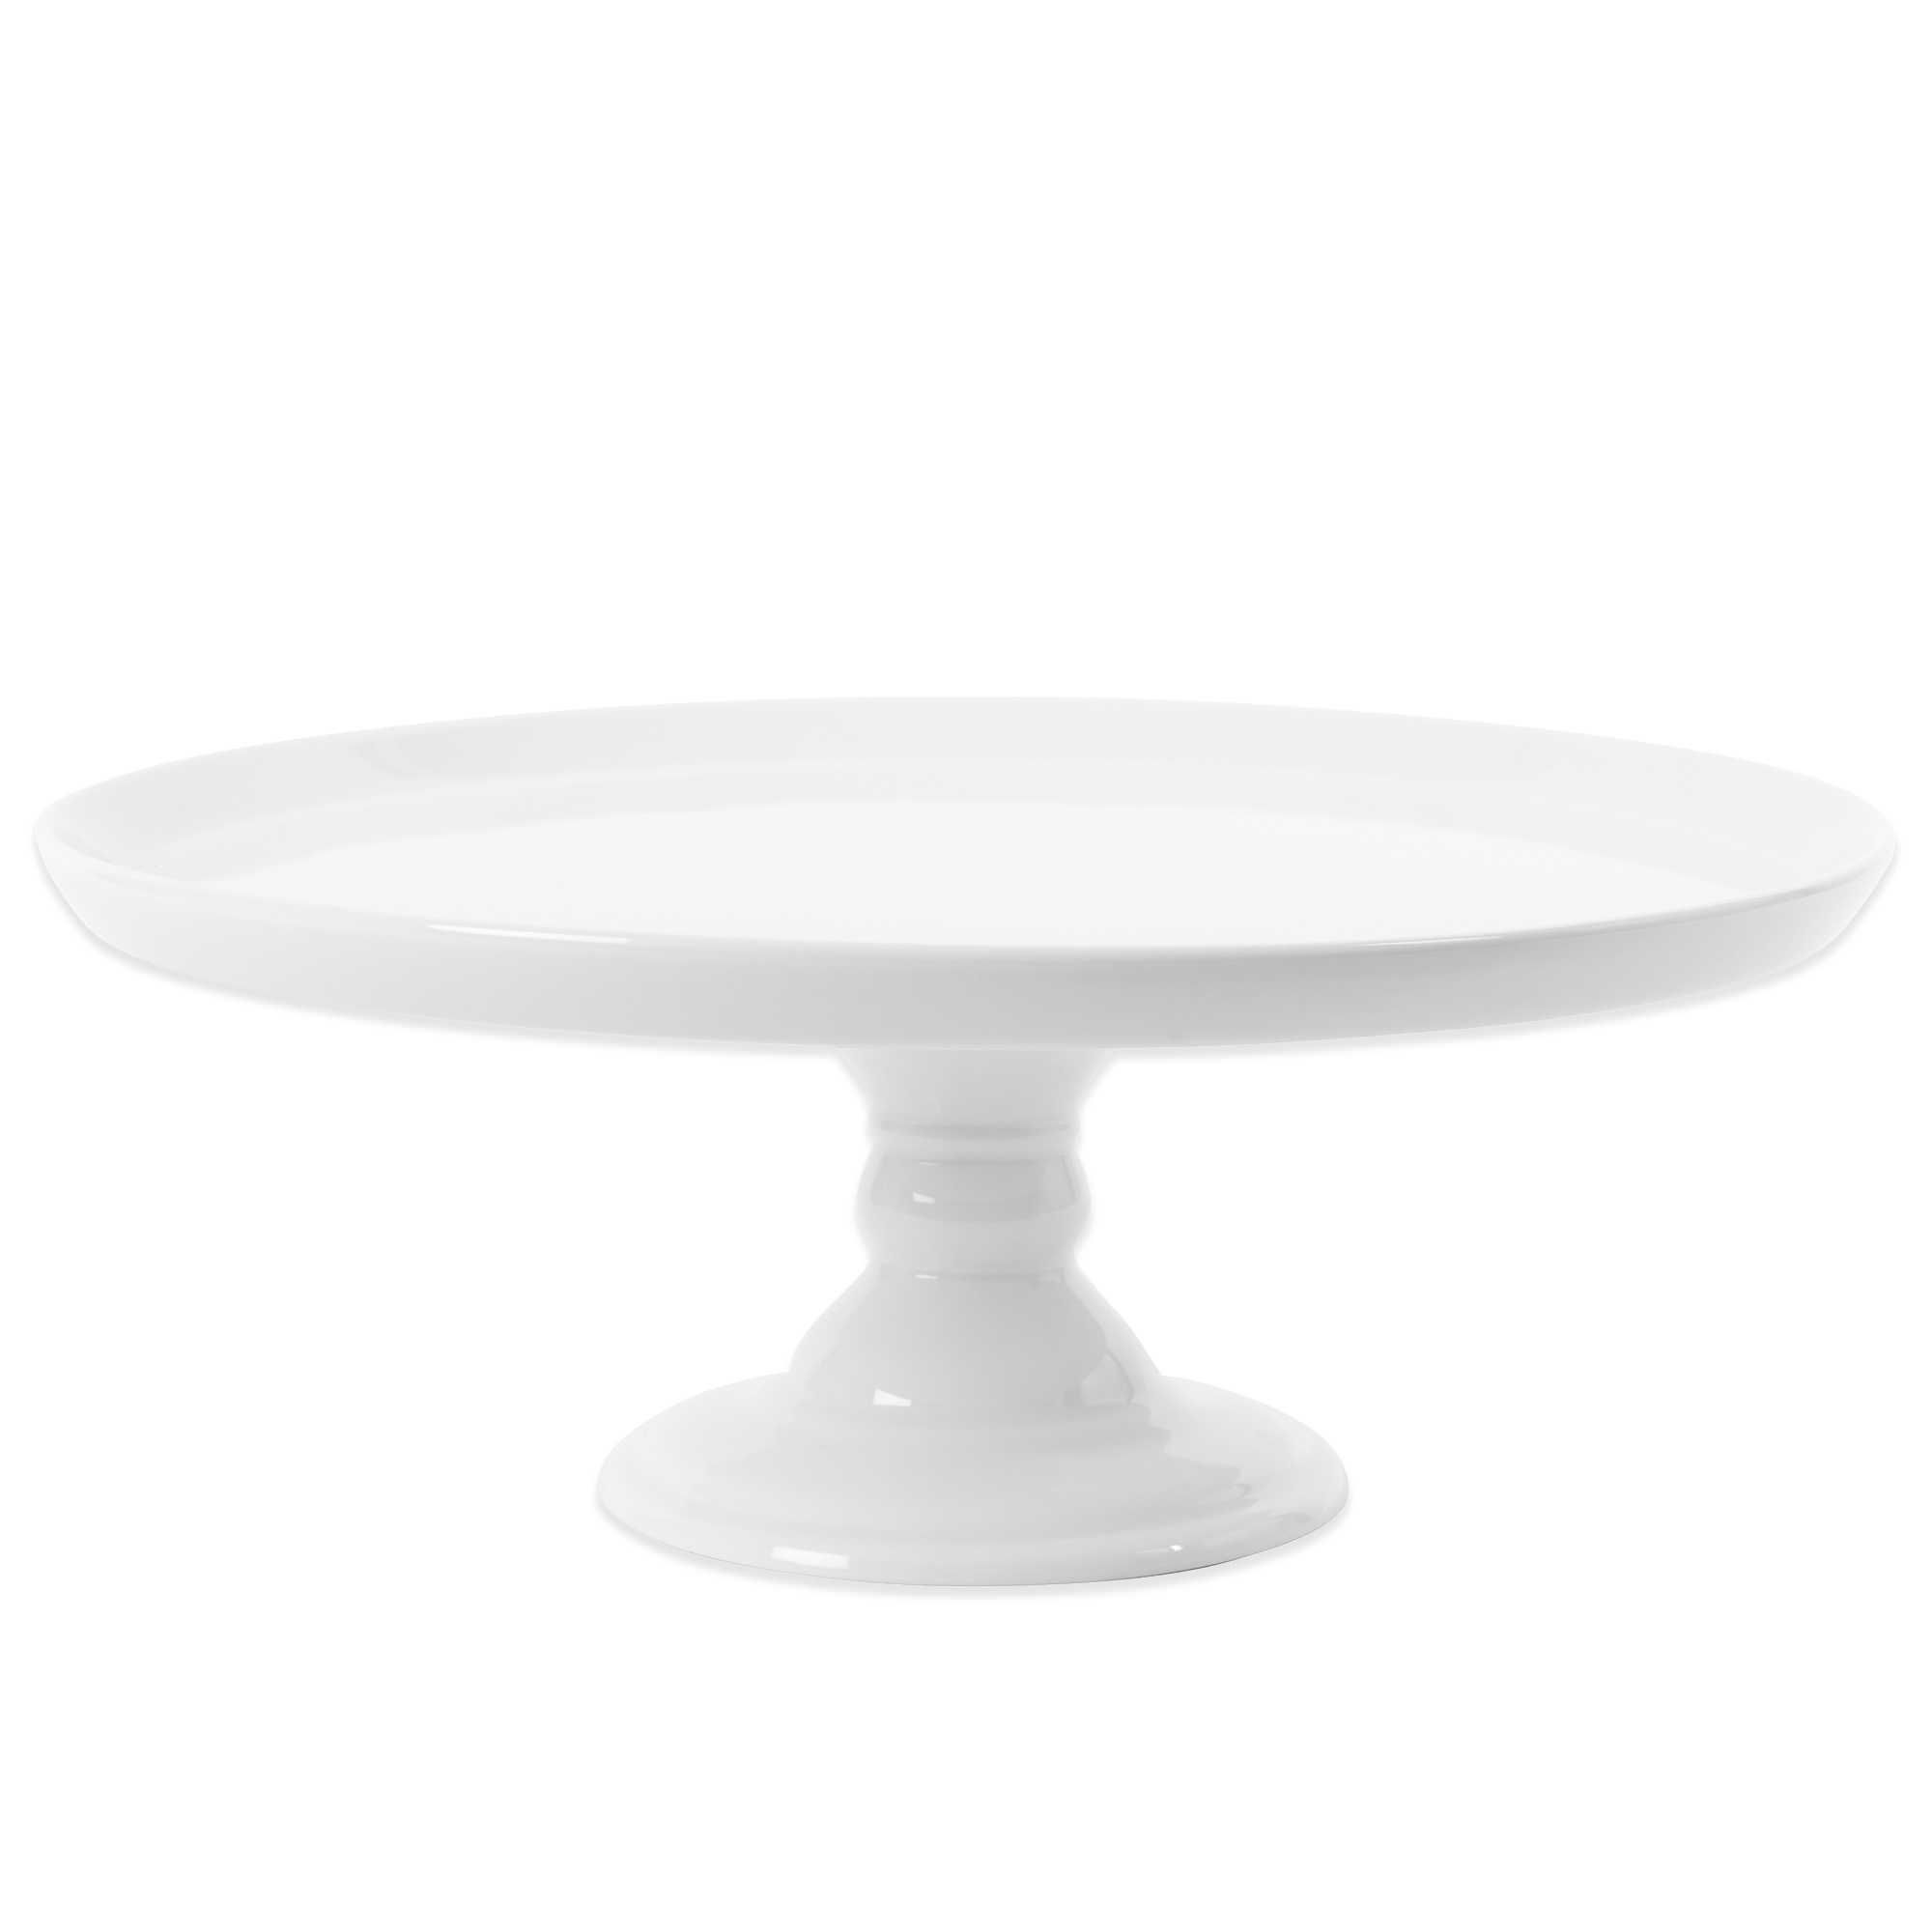 Everyday White By Fitz And Floyd Footed Cake Stand